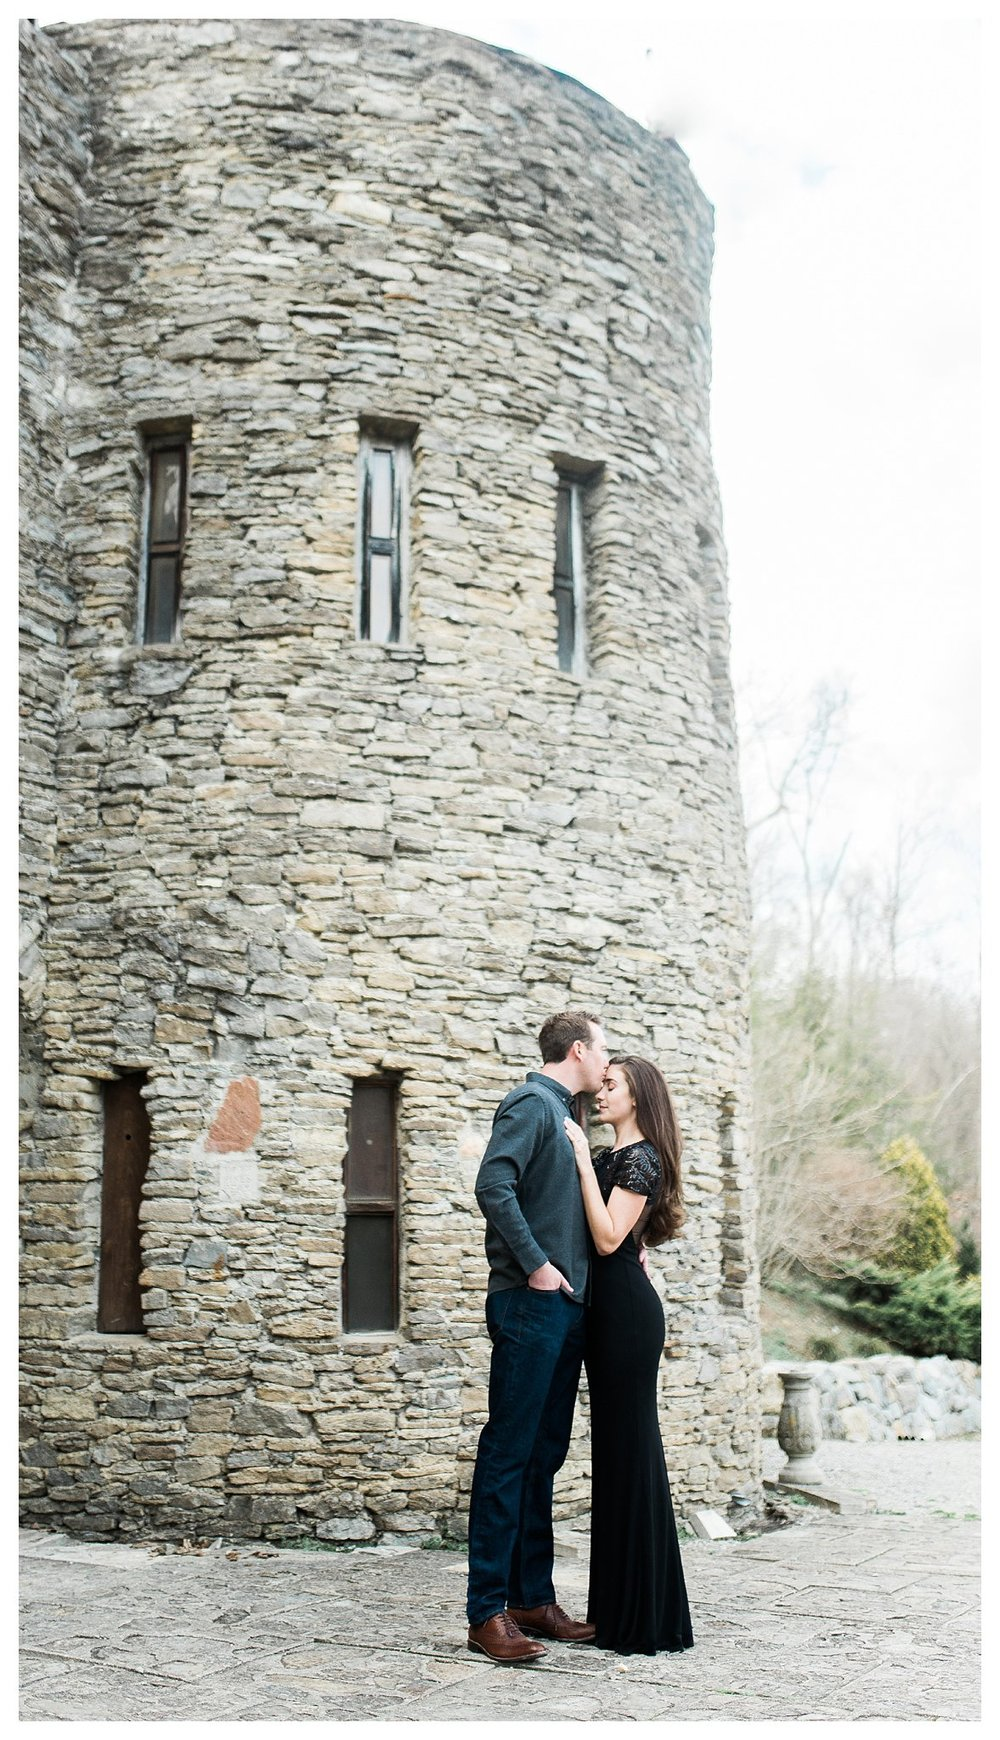 everleigh-photography-cincinnati-wedding-photographer-loveland-castle-cincinnati-engagement-photographer-14